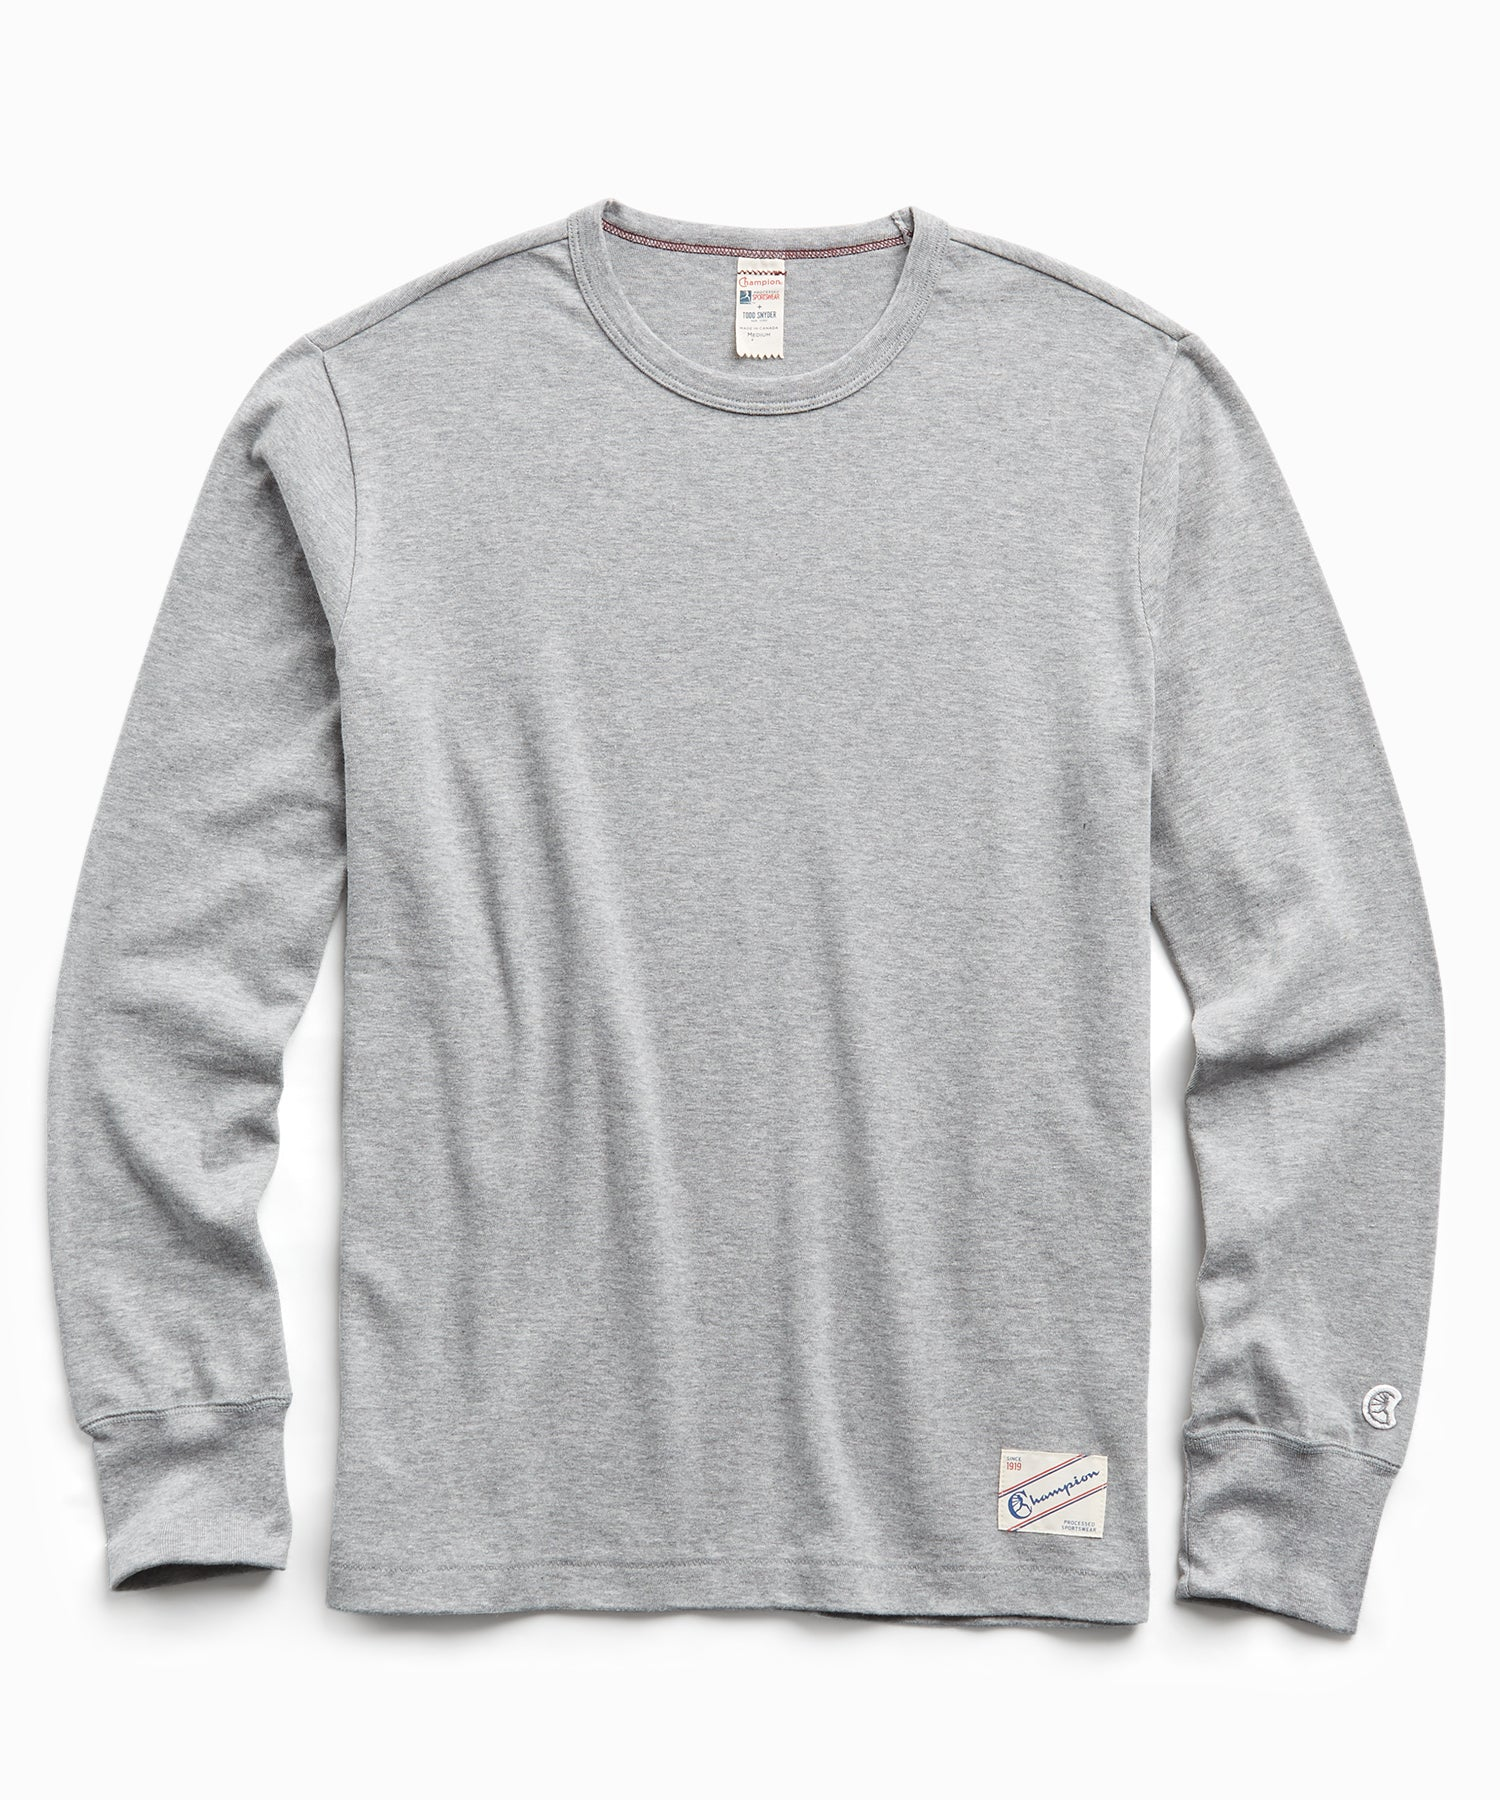 Heavy Weight Long Sleeve Jock Tag Tee in Grey Mix